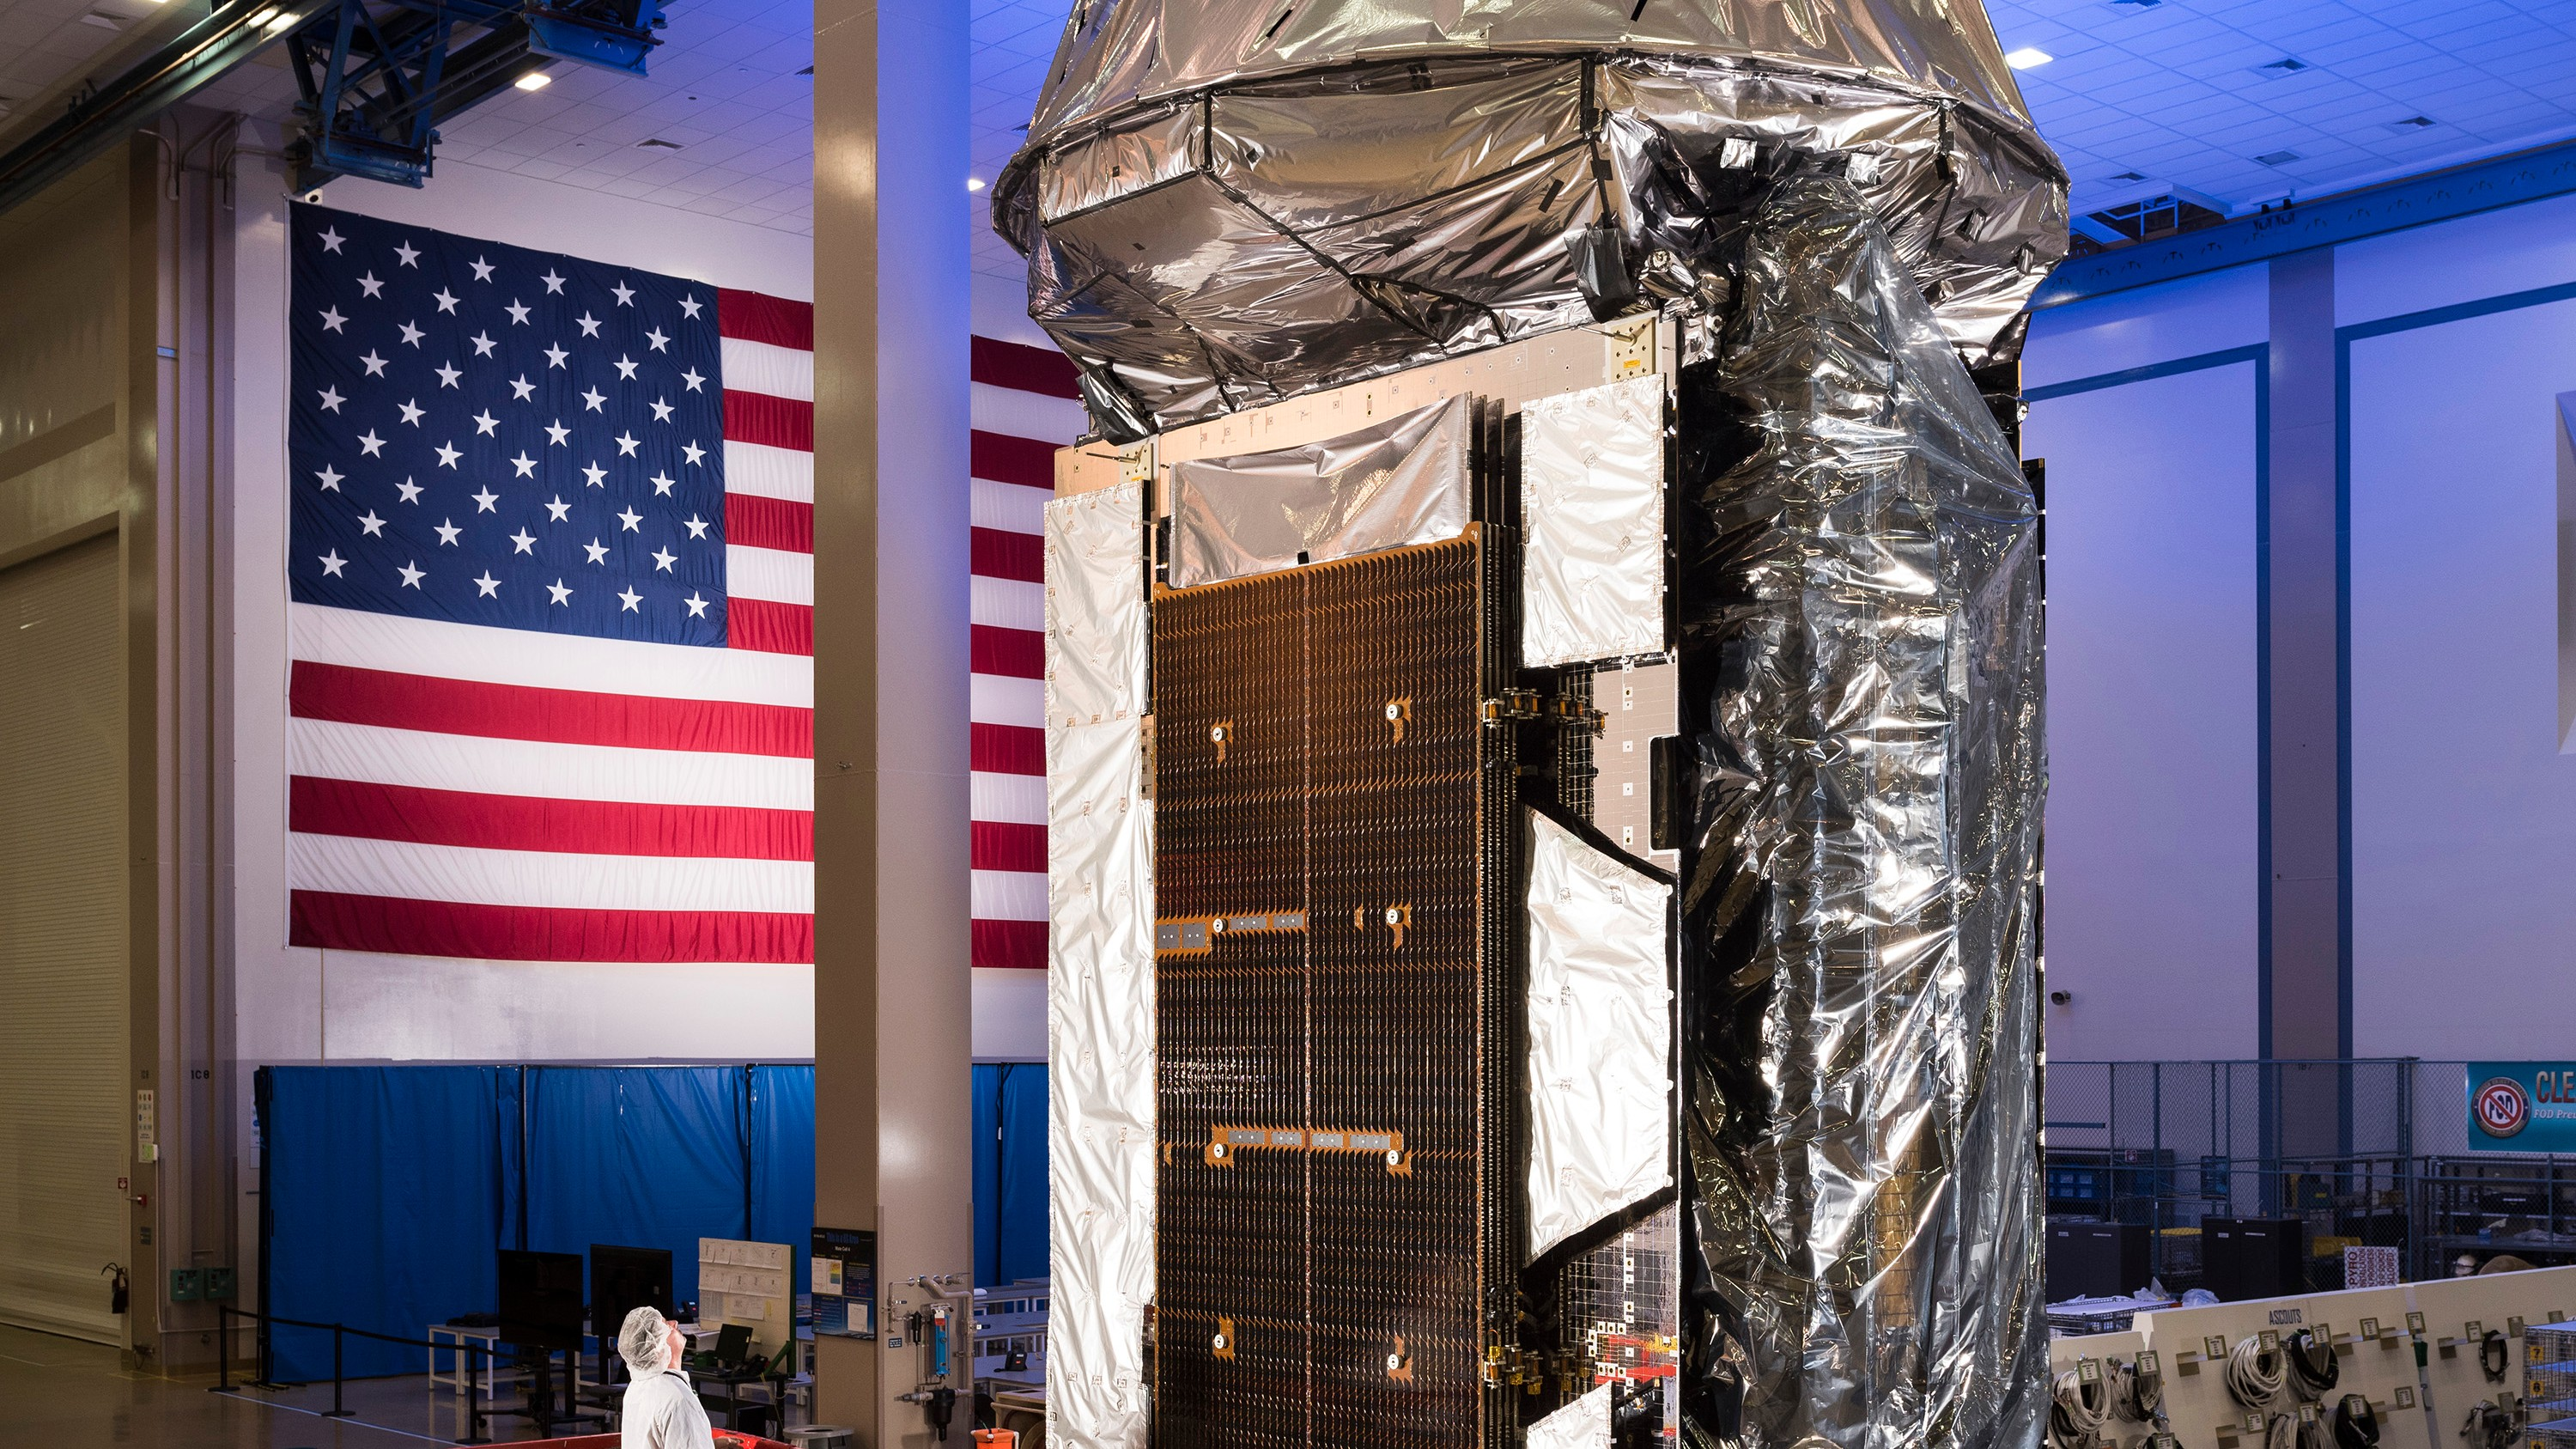 Stuff We Launched Into Space This Week: The U.S. Military's MUOS-5 Satellite